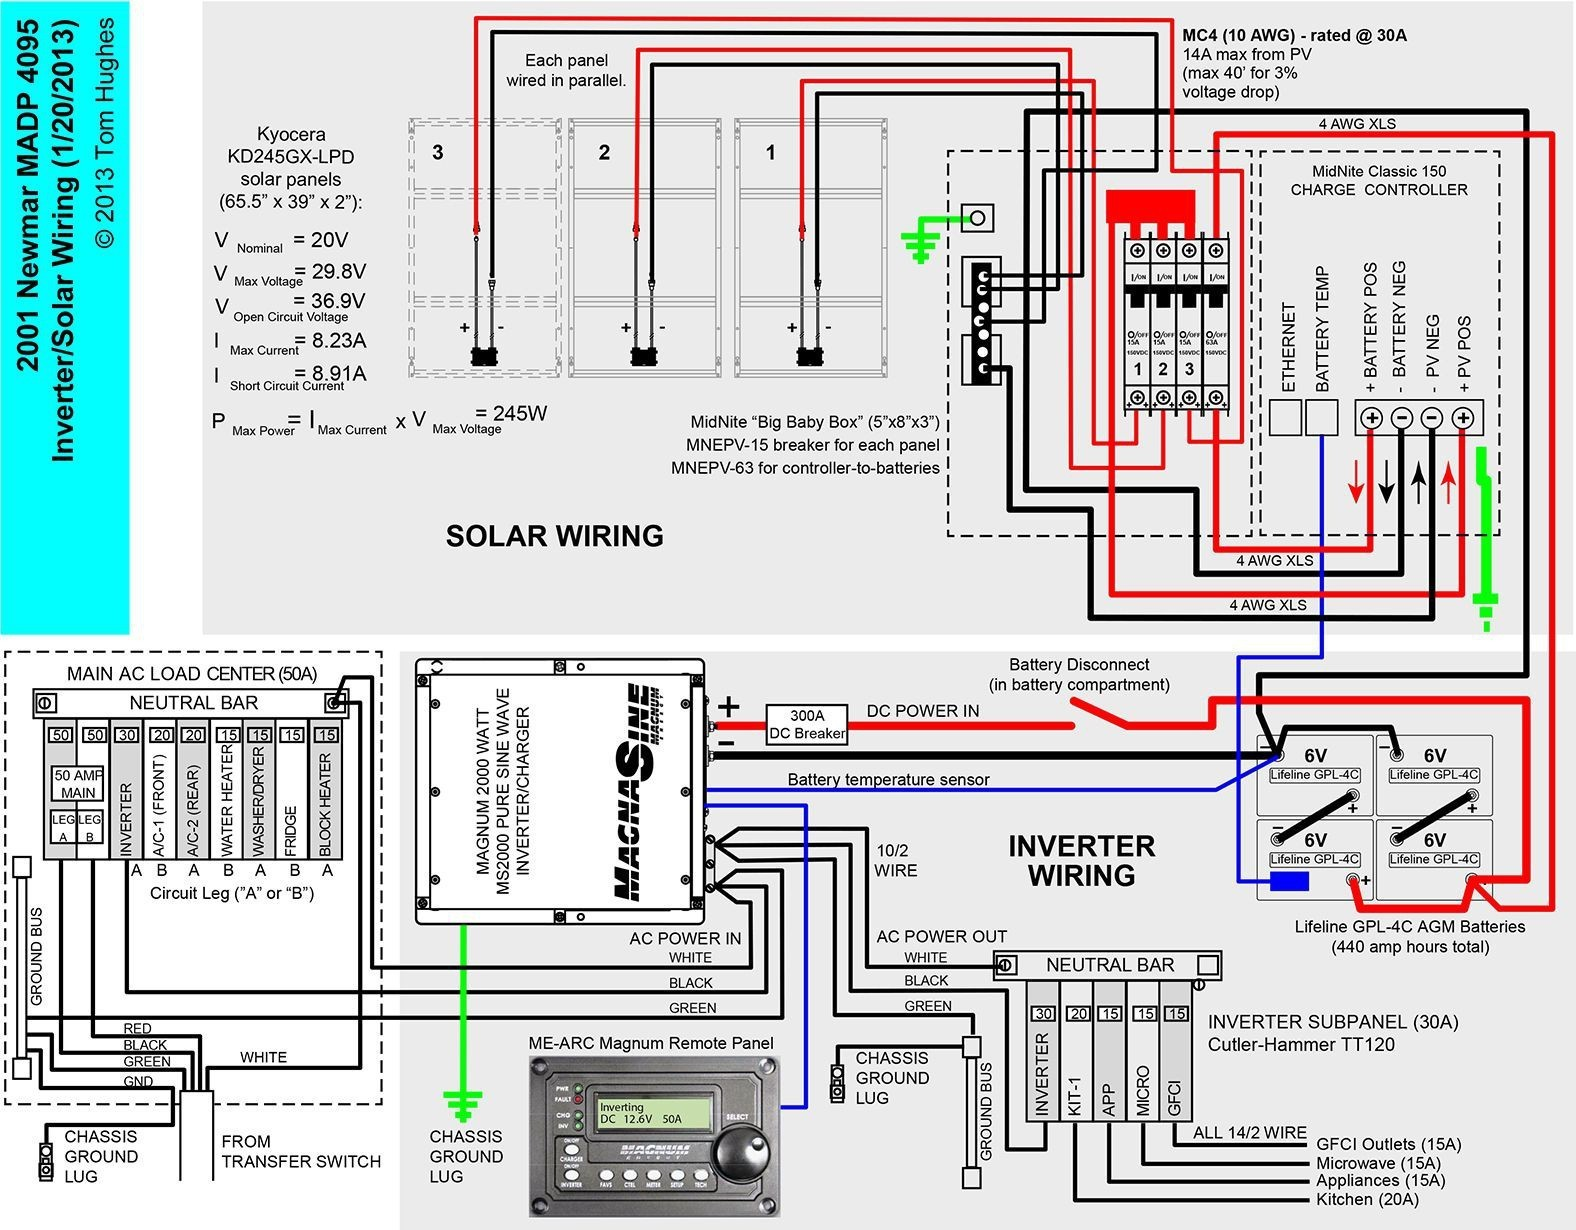 wiring diagram solar panel installation hdmi wire rv new